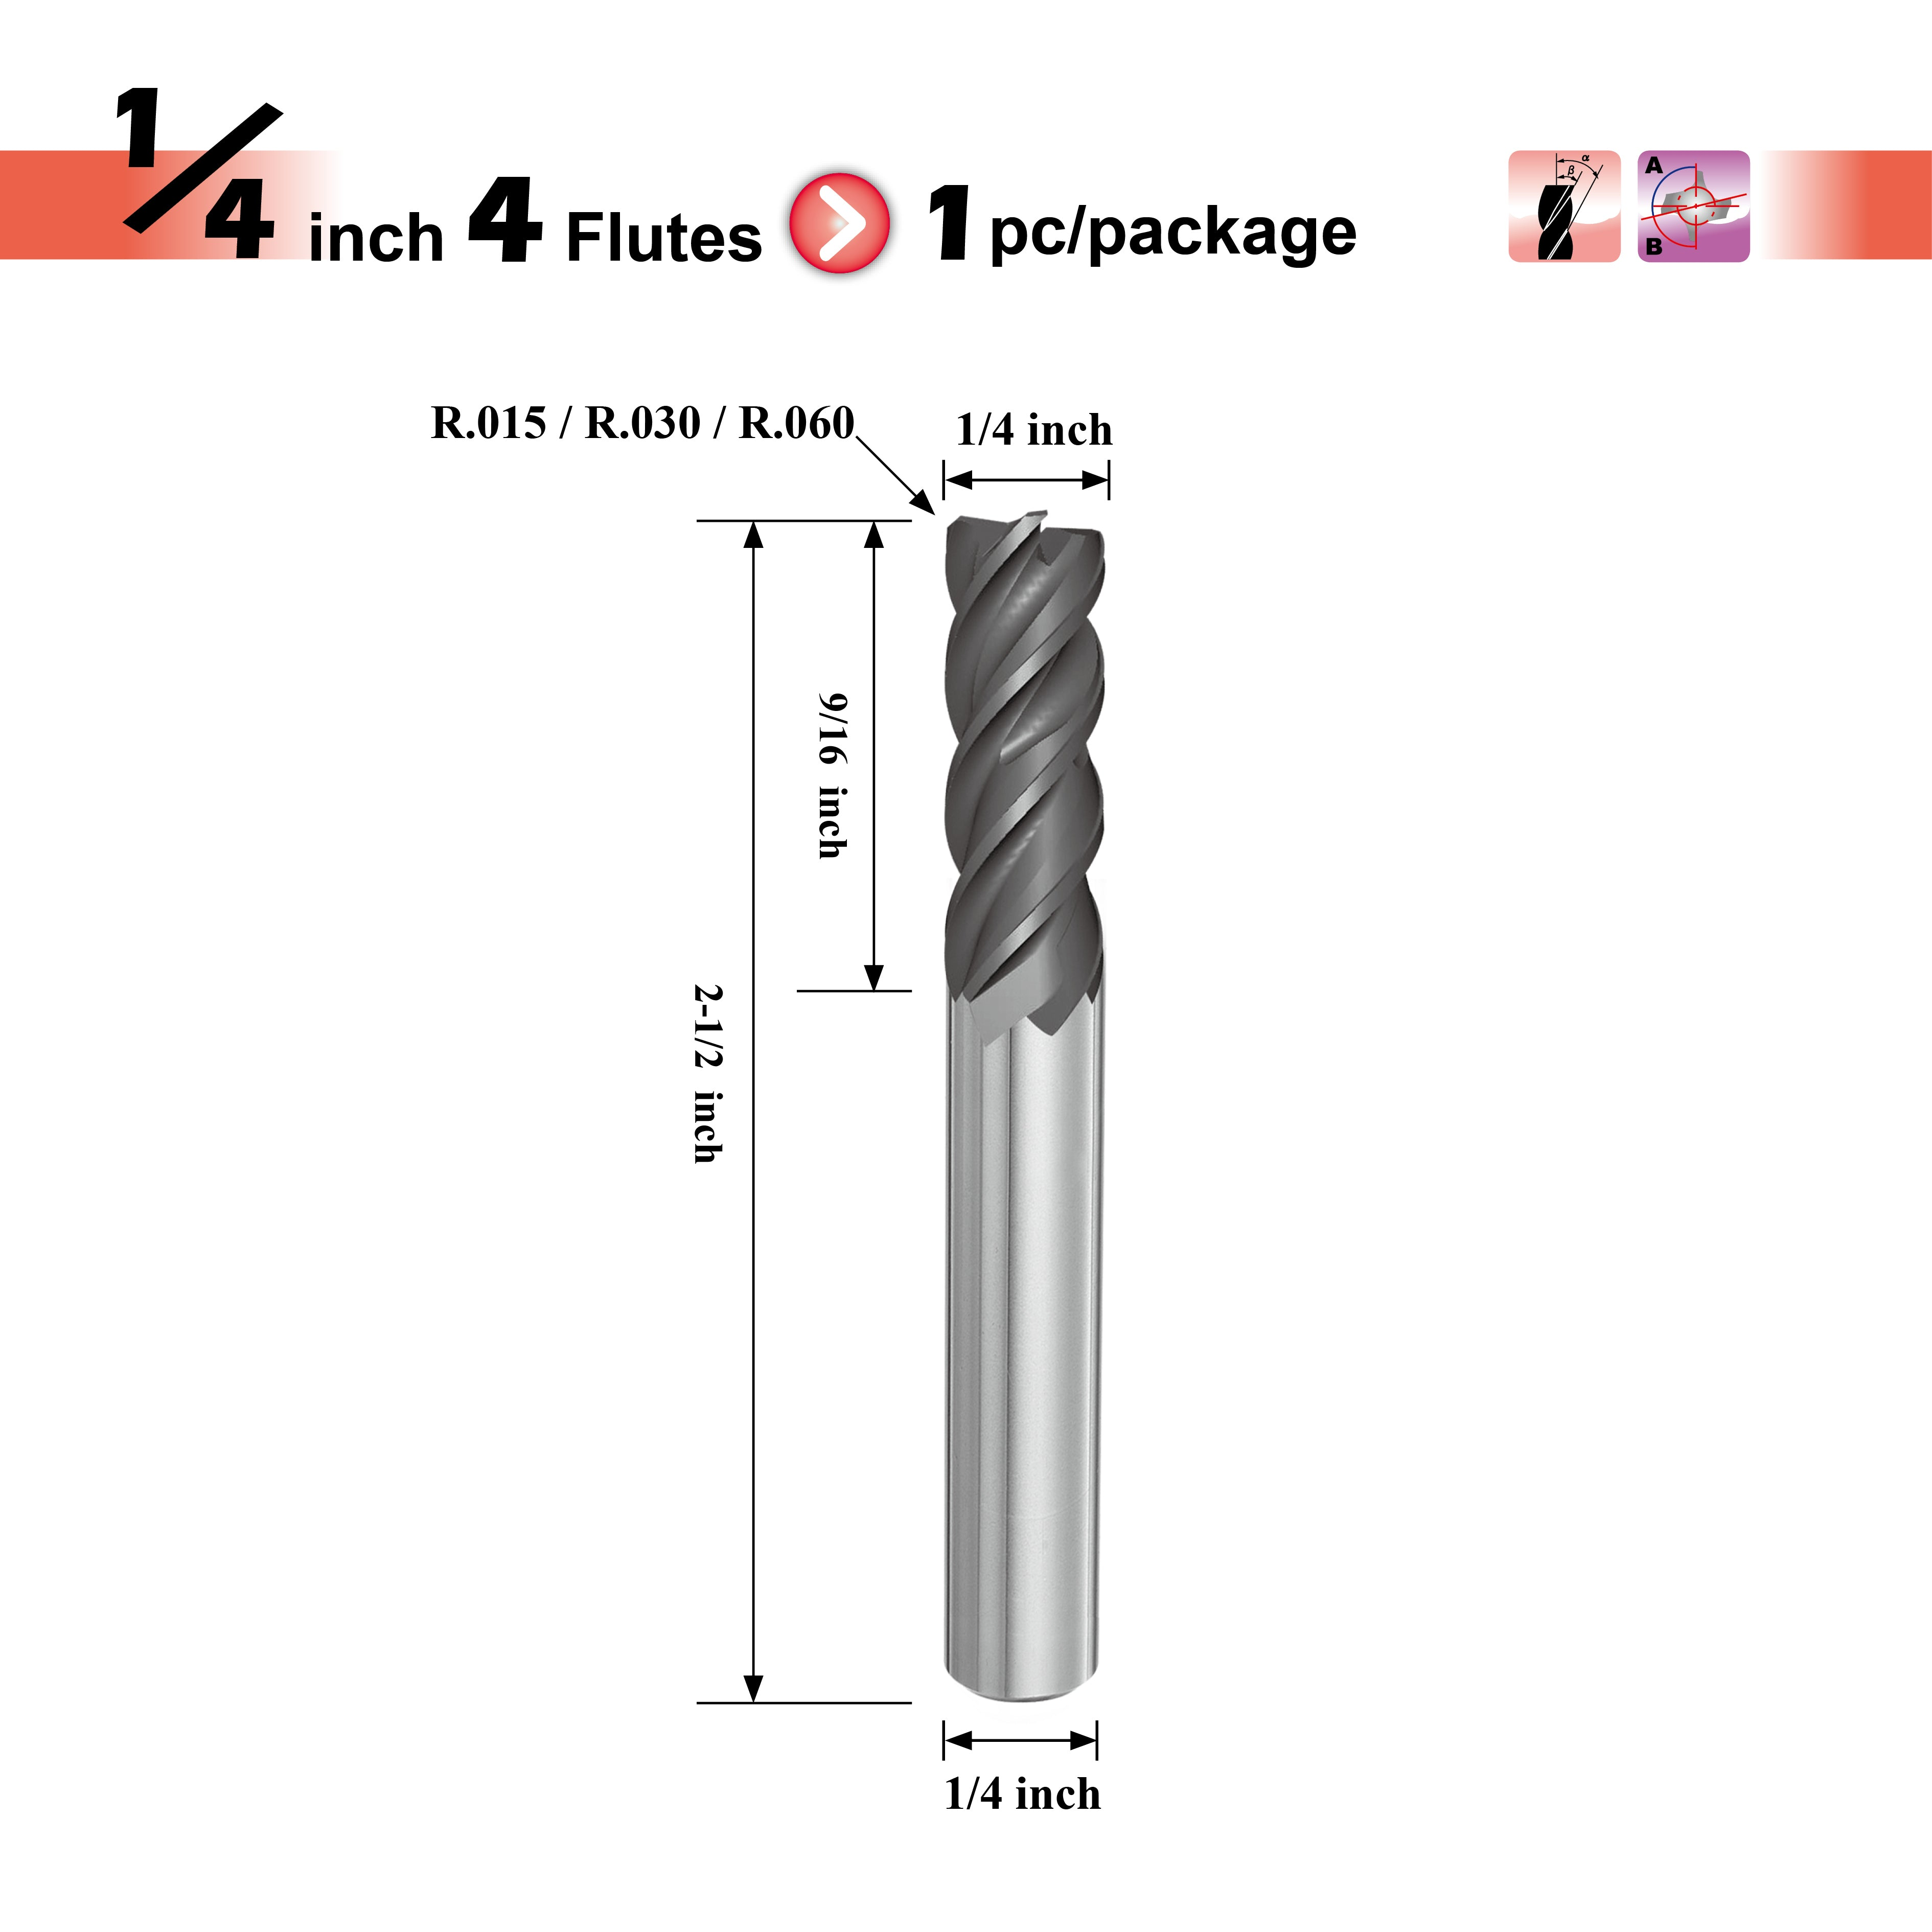 [Speed Tiger] IPVR Carbide Corner Radius End Mill for Titanium - R0.015, 1/4""